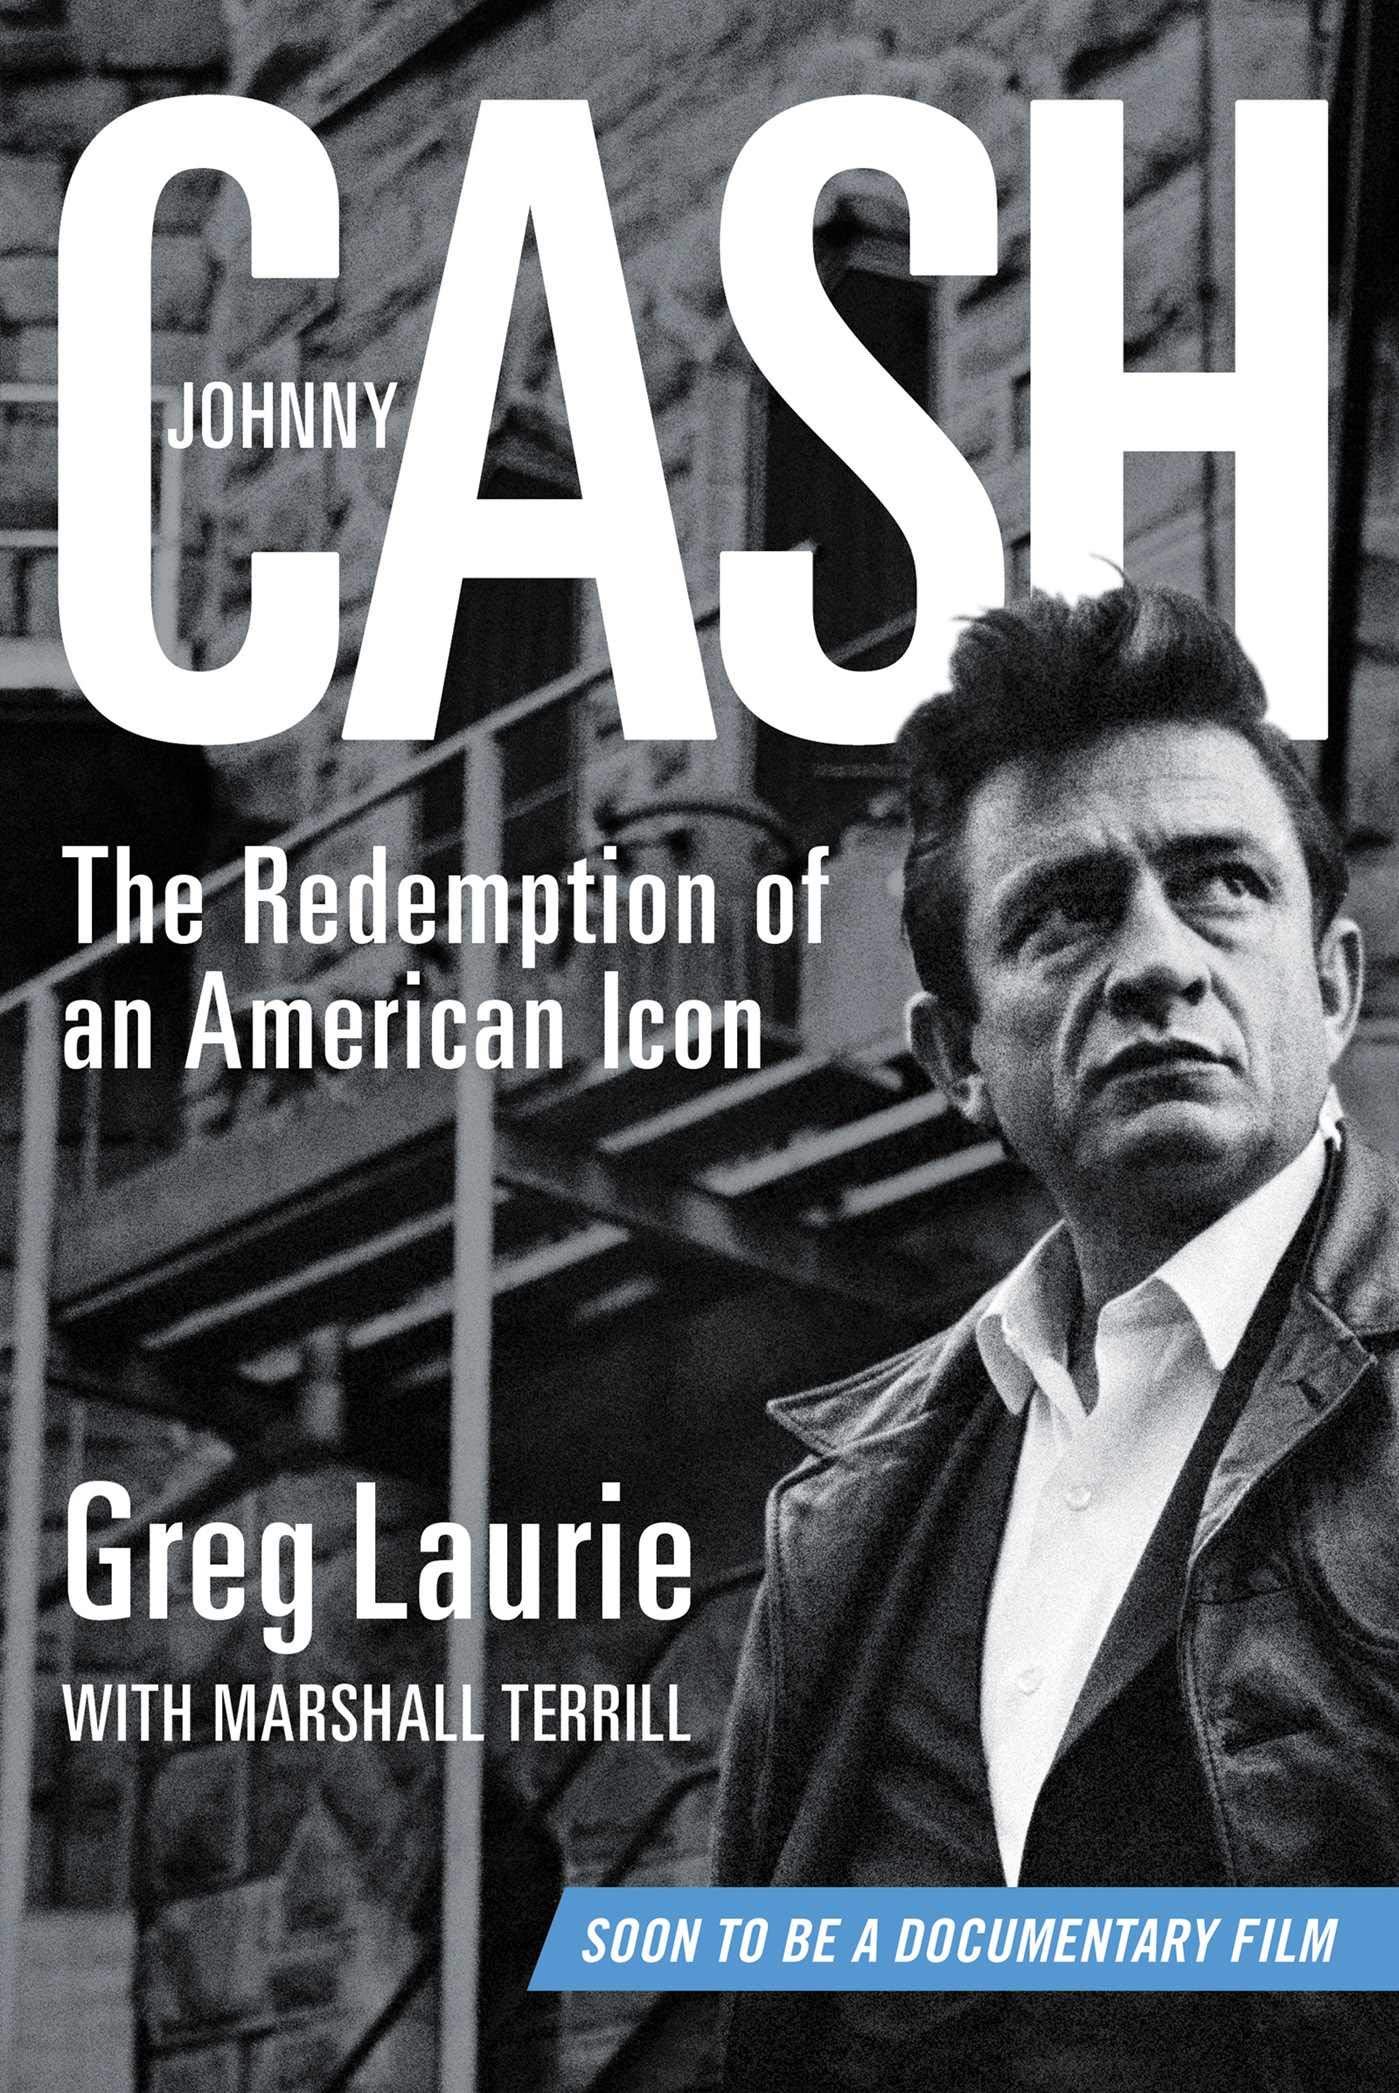 Johnny Cash  The Redemption Of An American Icon